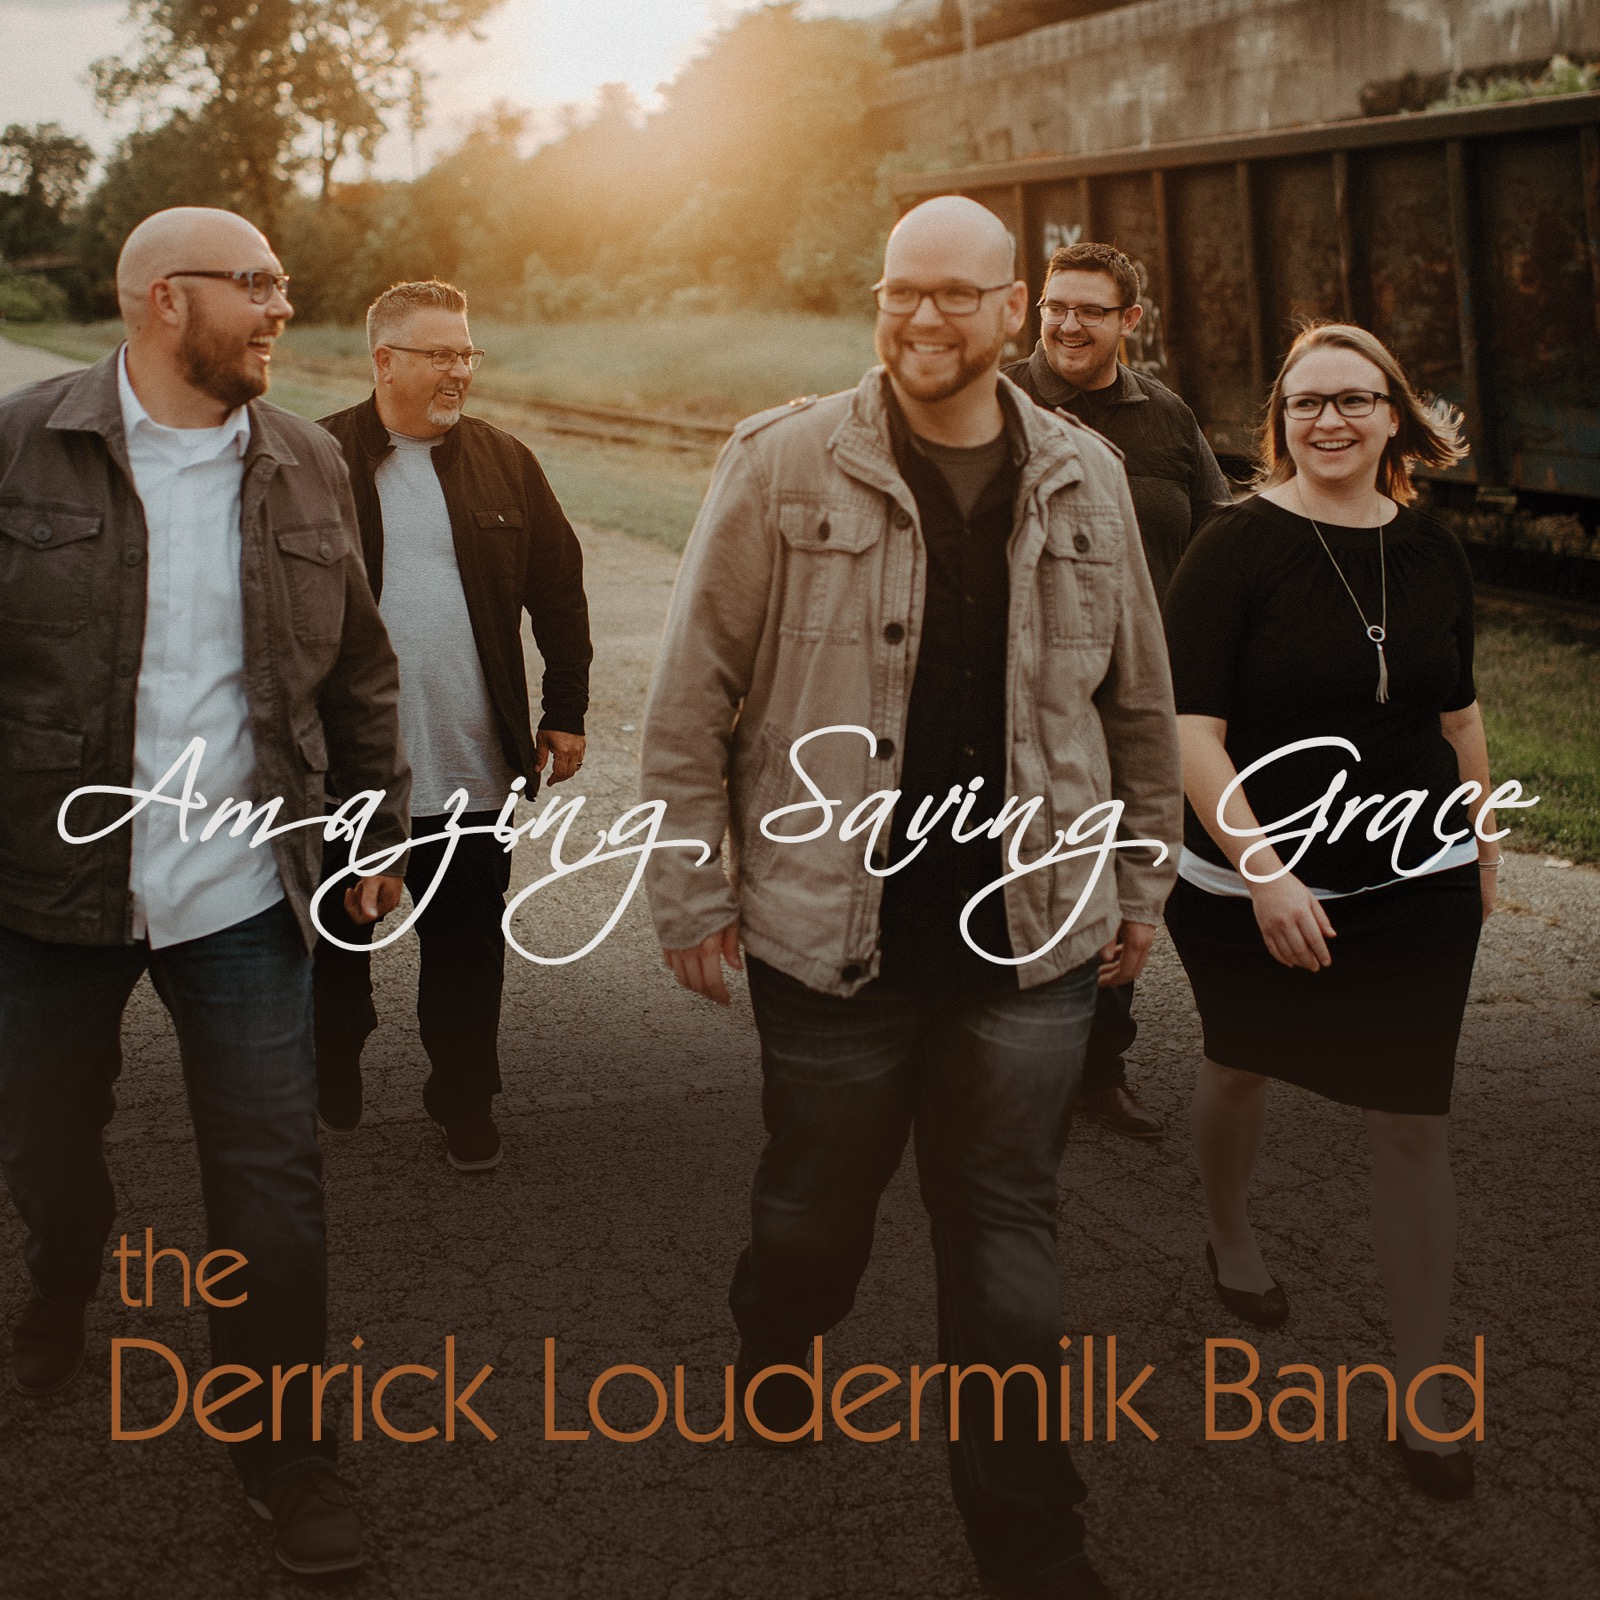 Derrick Loudermilk Band